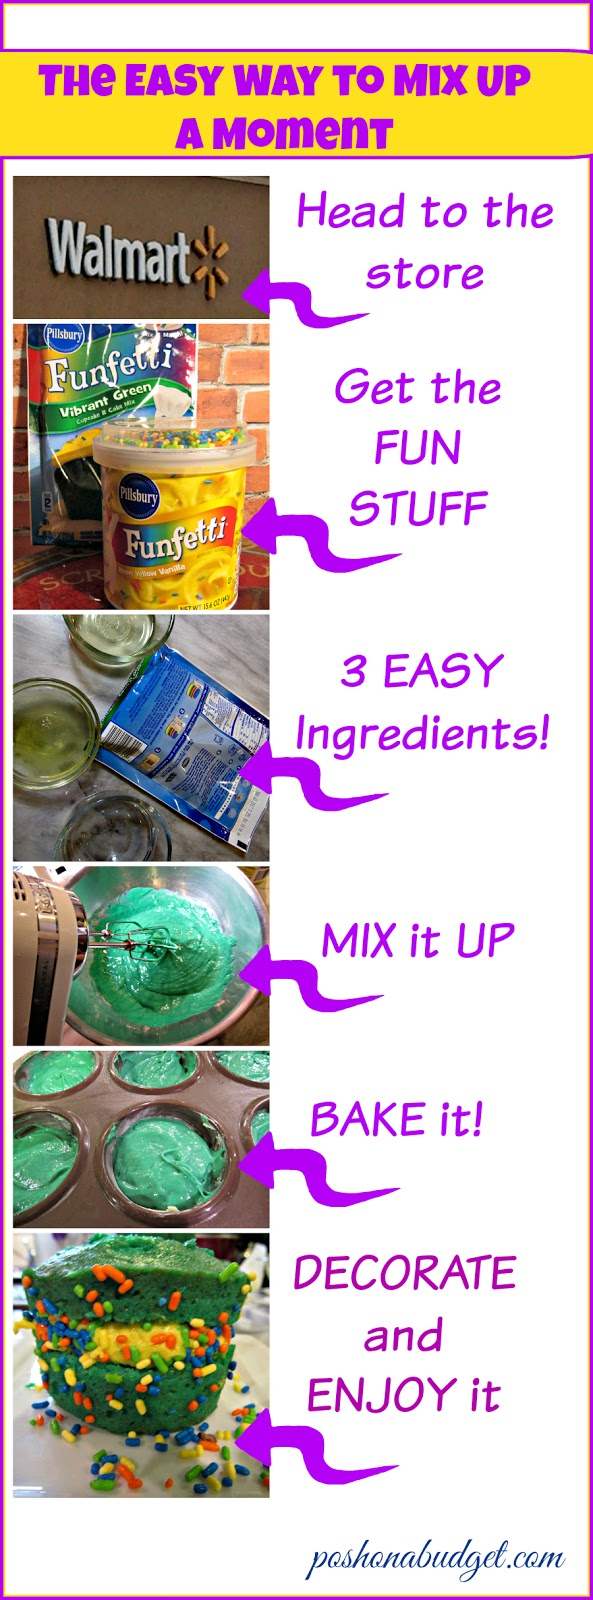 This year our GREEN is all about the CUPCAKES  #ad #MixUpAMoment